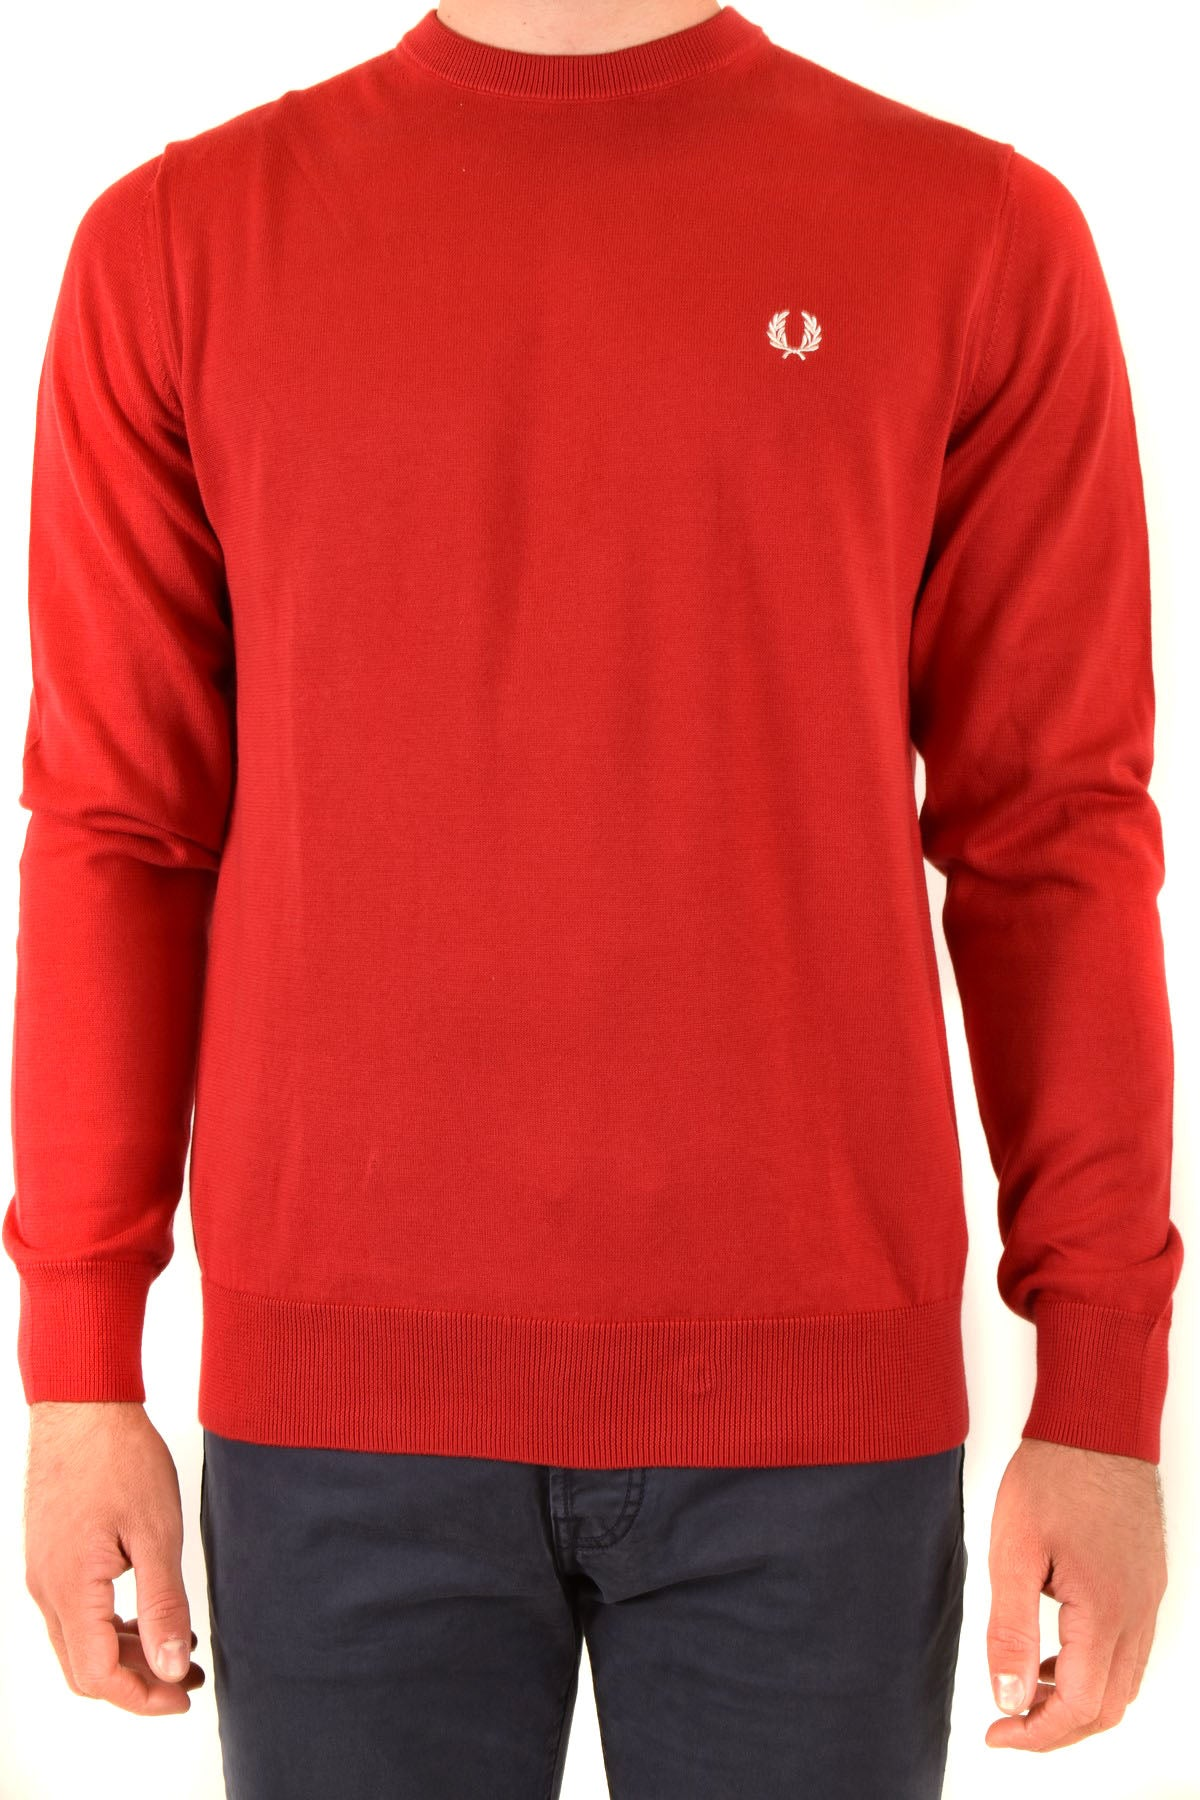 Sweater Fred Perry-Men's Fashion - Men's Clothing - Hoodies & Sweatshirts-XS-Product Details Manufacturer Part Number: K5523 Col 401Year: 2020Composition: Cotton 100%Size: IntGender: ManMade In: ChinaSeason: Fall / WinterMain Color: RedClothing Type: Sweater Terms: New With Label-Keyomi-Sook